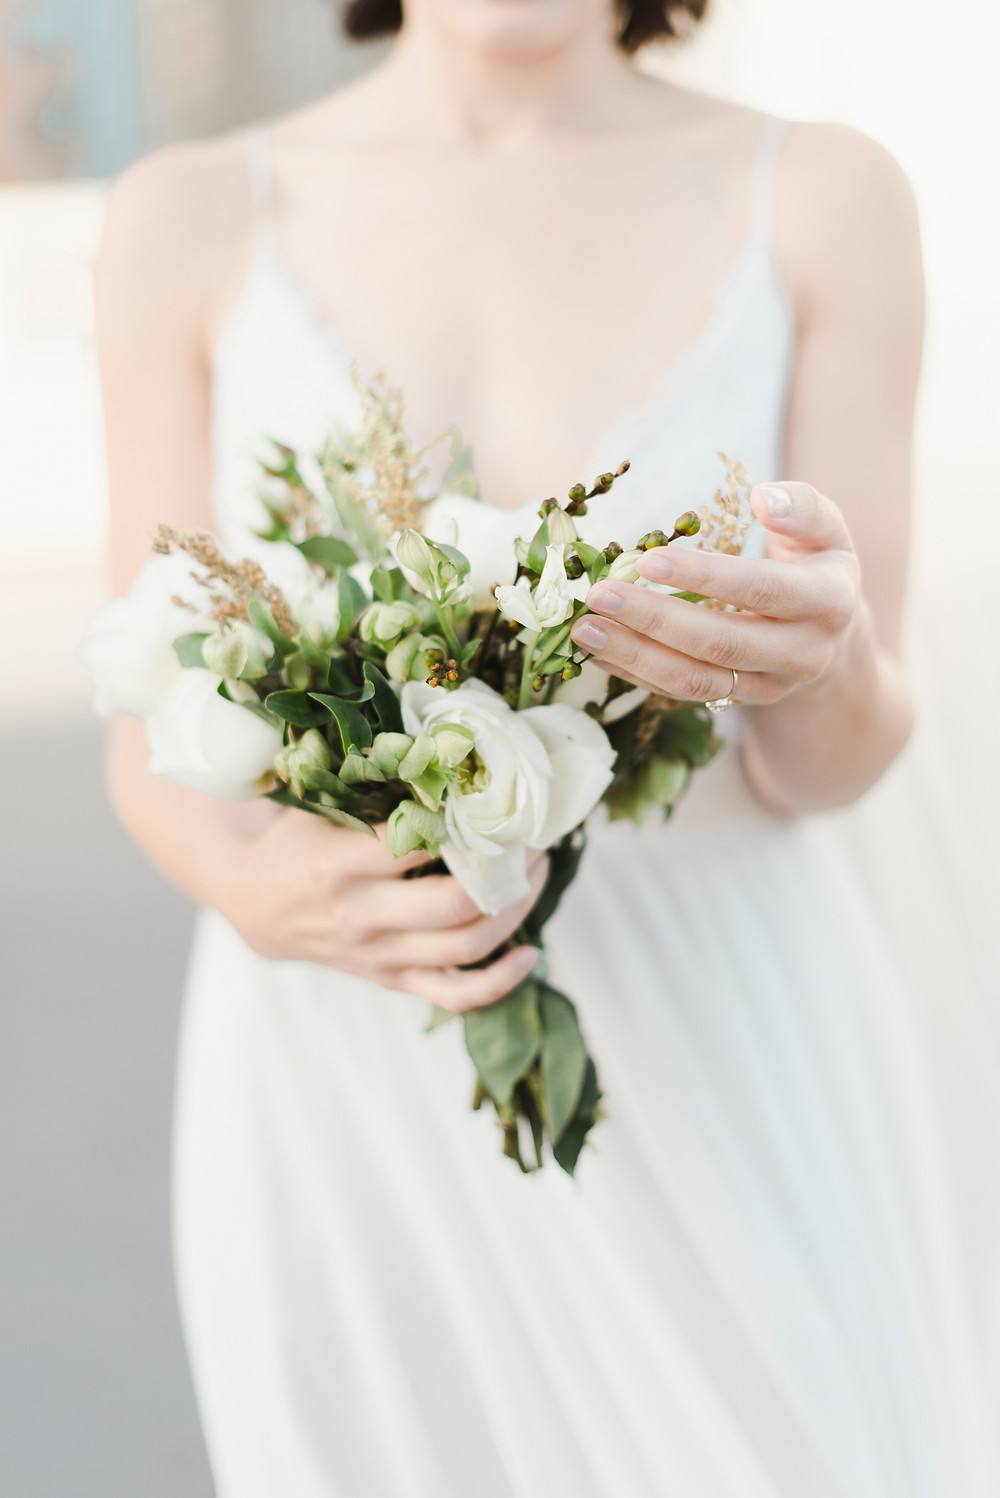 7 Reasons NOT to Have a Mini Wedding